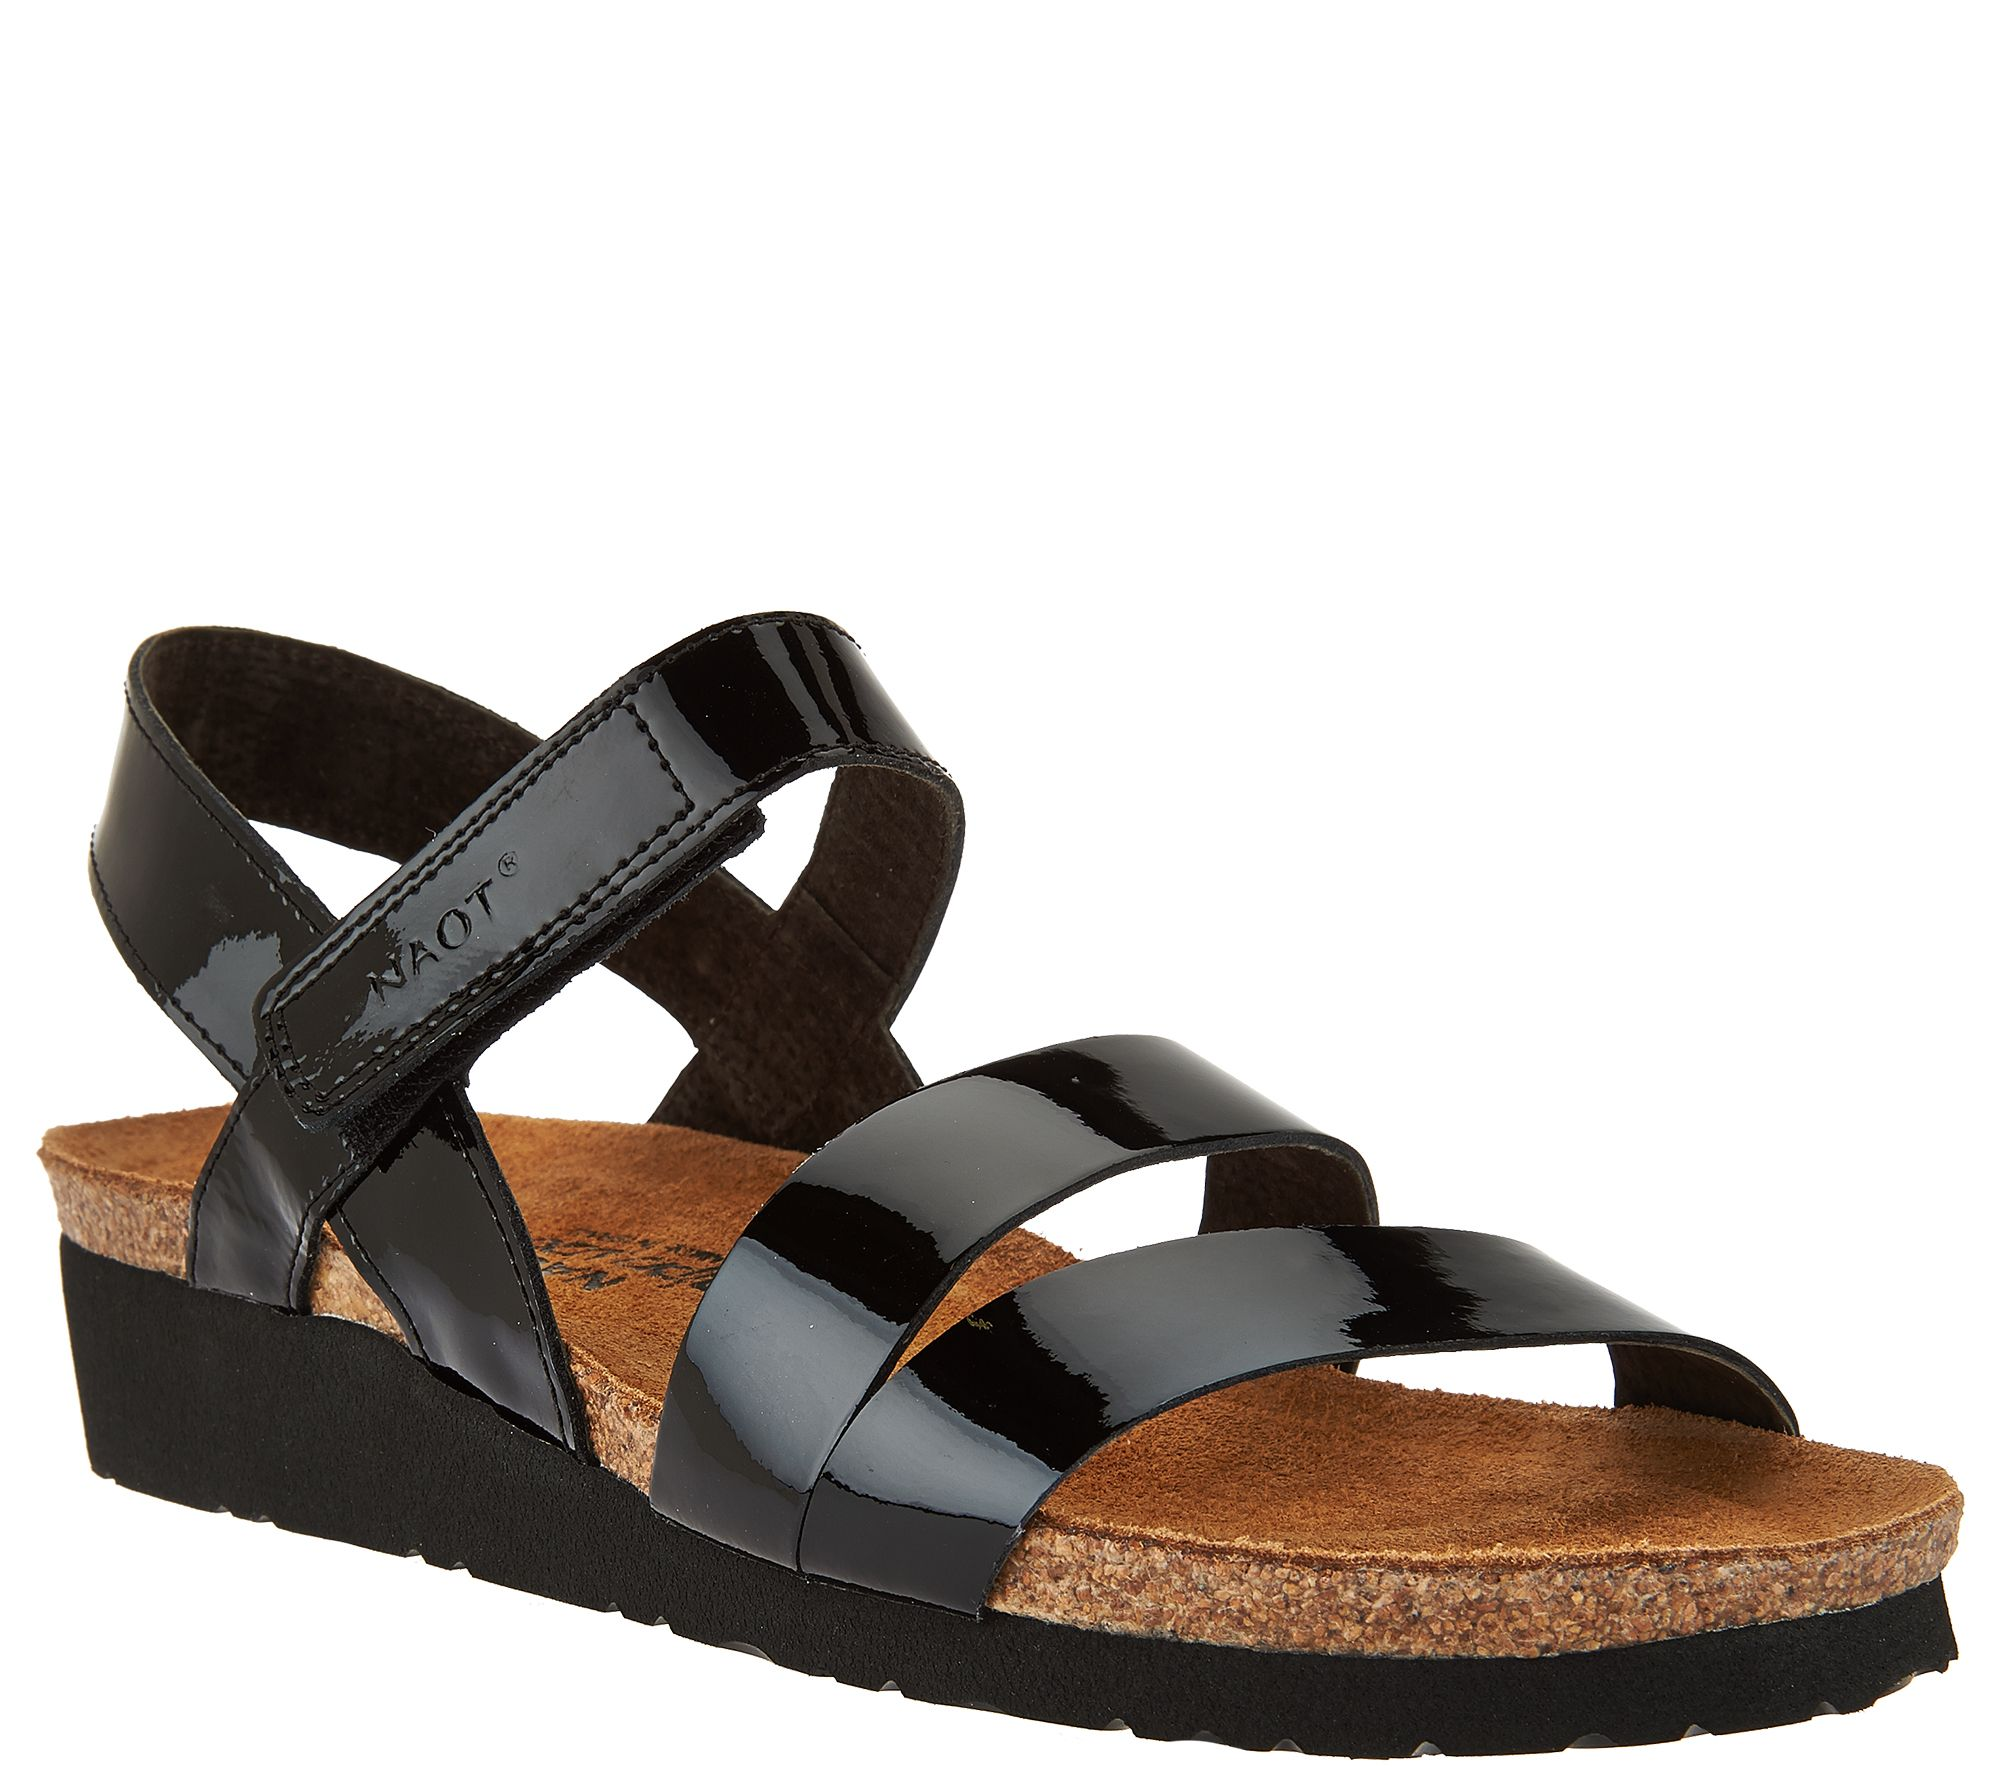 330216500600 Naot Leather Cross-strap Sandals - Kayla - Page 1 — QVC.com